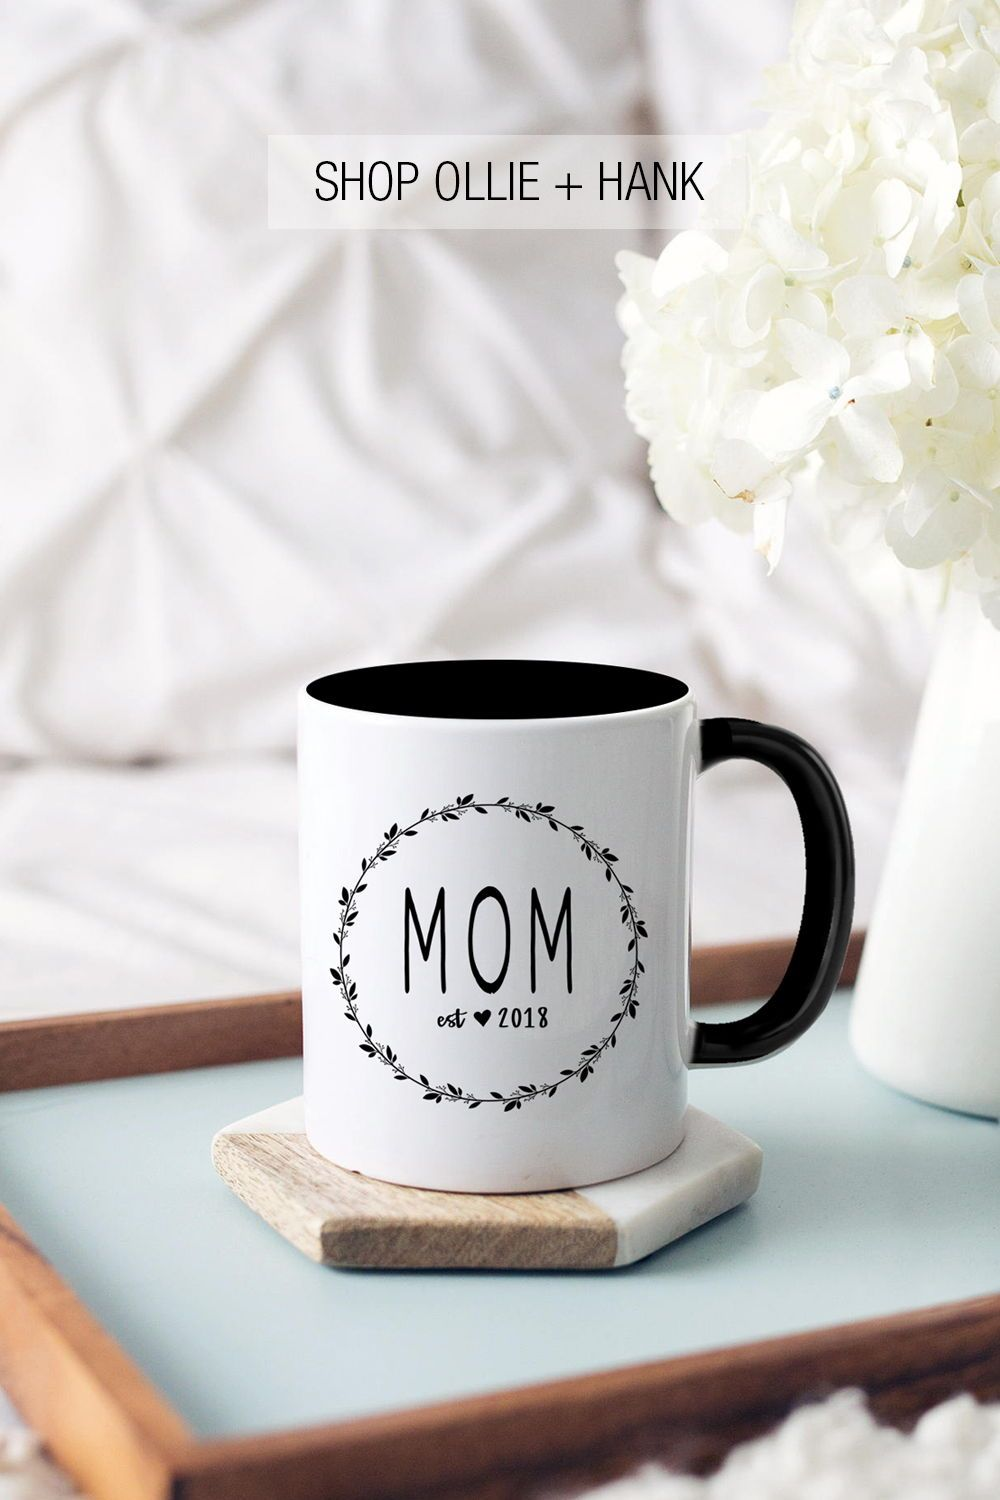 a737a4914d7 New Mom Gift Personalized | Mothers Day Gifts From Daughter | Mom Est Mug |  Mother Day Gifts From Kids For Mom | Pregnancy Announcement Mugs | New Mom  Mug ...